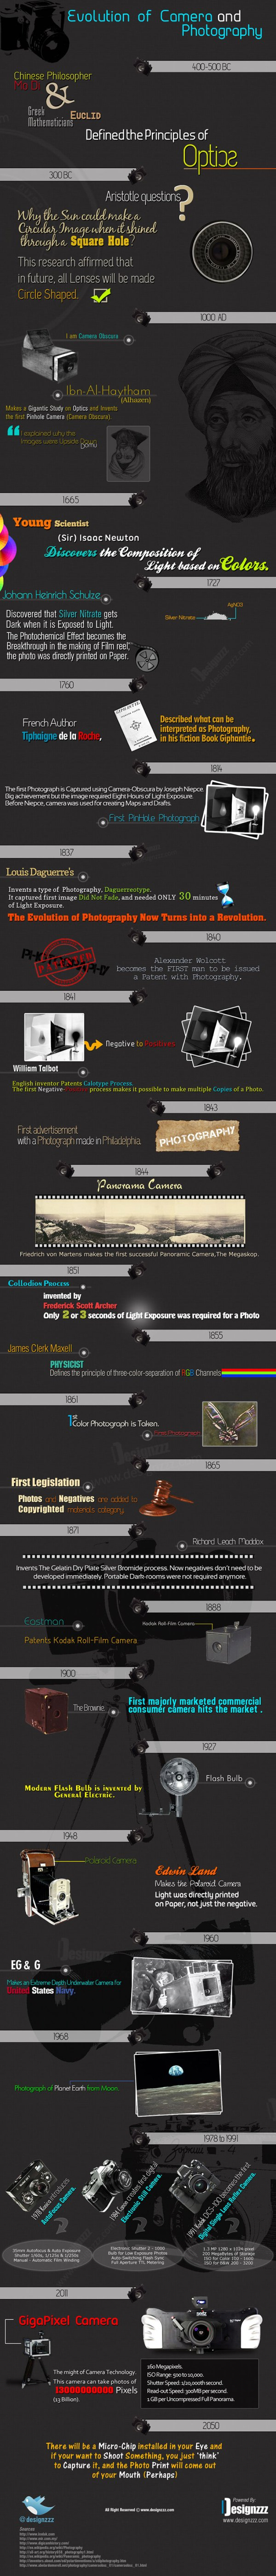 Evolution of Camera and Photography